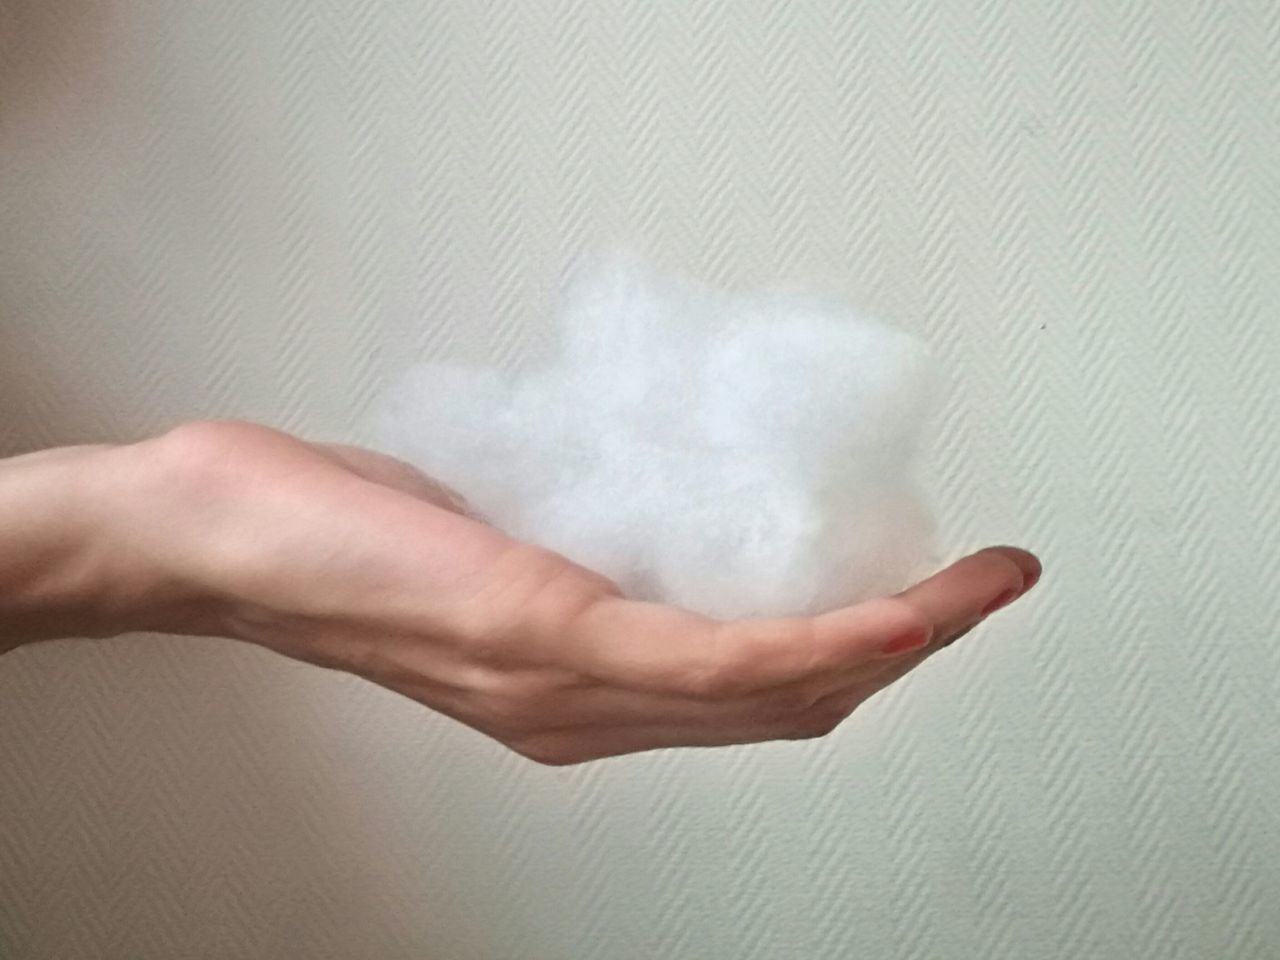 Human Hand Human Body Part One Person People Adults Only Indoors  Adult Day Natural Light Photography Imperfectly Perfect Pastel Colors Weather Weather Condition Symbolic  Soft Colors  Cloud Fluffy White On White Fluffy Clouds Cottoncandy Cotton Clouds Iconic Images  Backgrounds Dream Poetic Caption